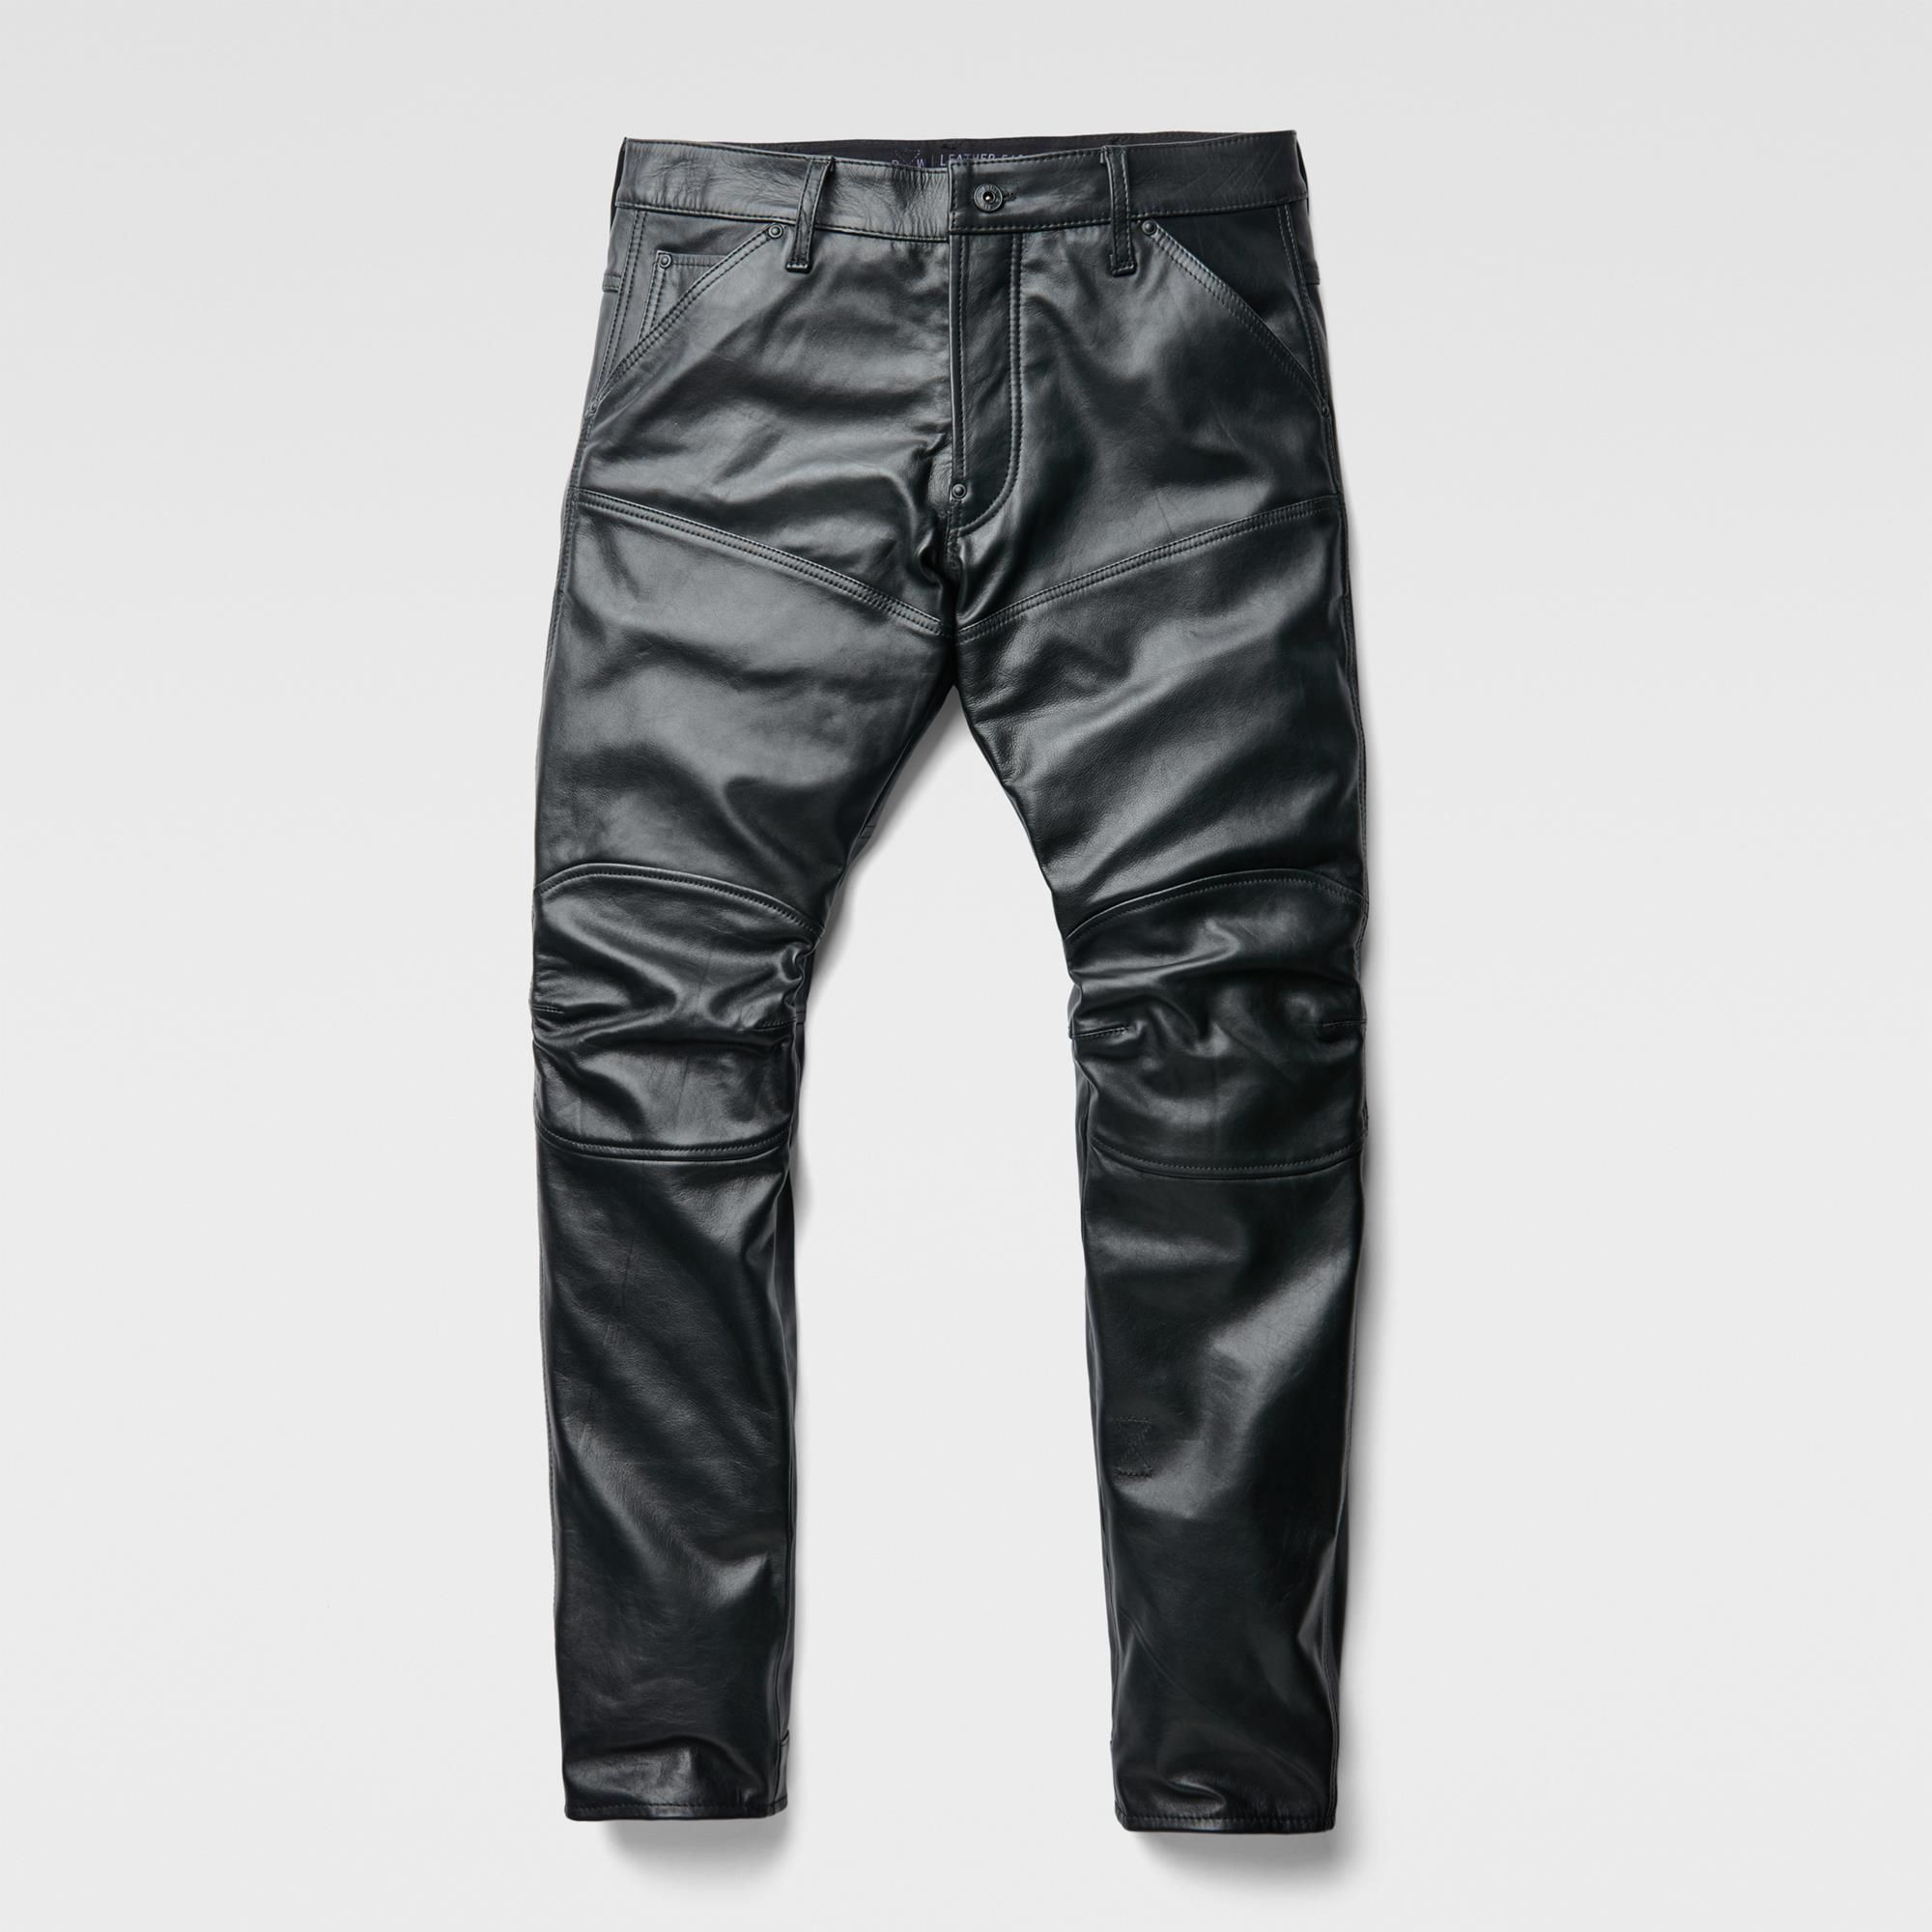 Leather 5620 3D Slim Pants | Pantalon cuir, Pantalon homme